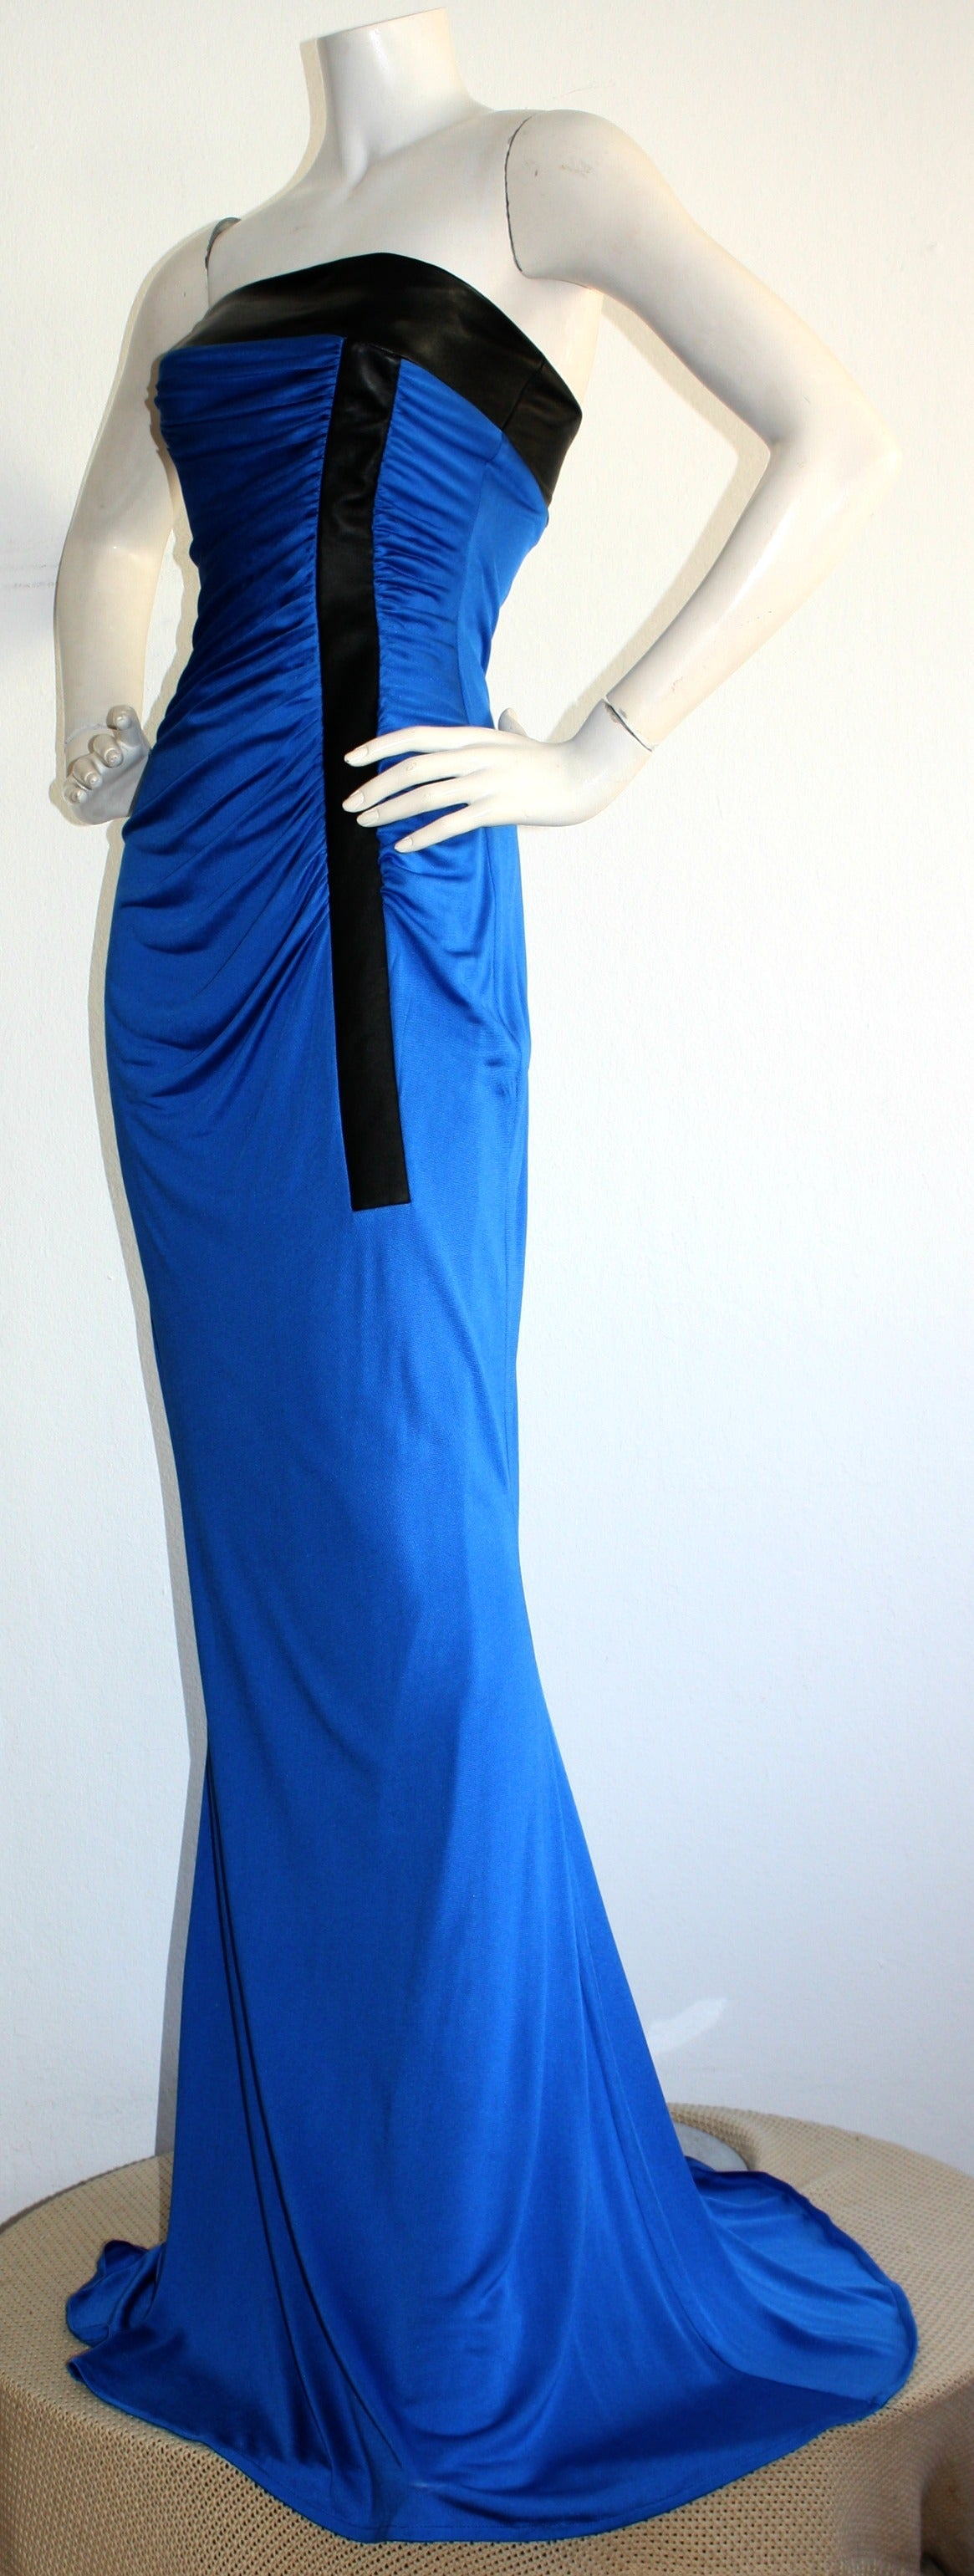 Amazing! This vintage Lloyd Klein Couture gown comes from Ivana Trump's personal collection. Auctioned off a few years back, with original auction tags still attached. Beautiful royal blue color, with black leather at bust, and down left bodice.